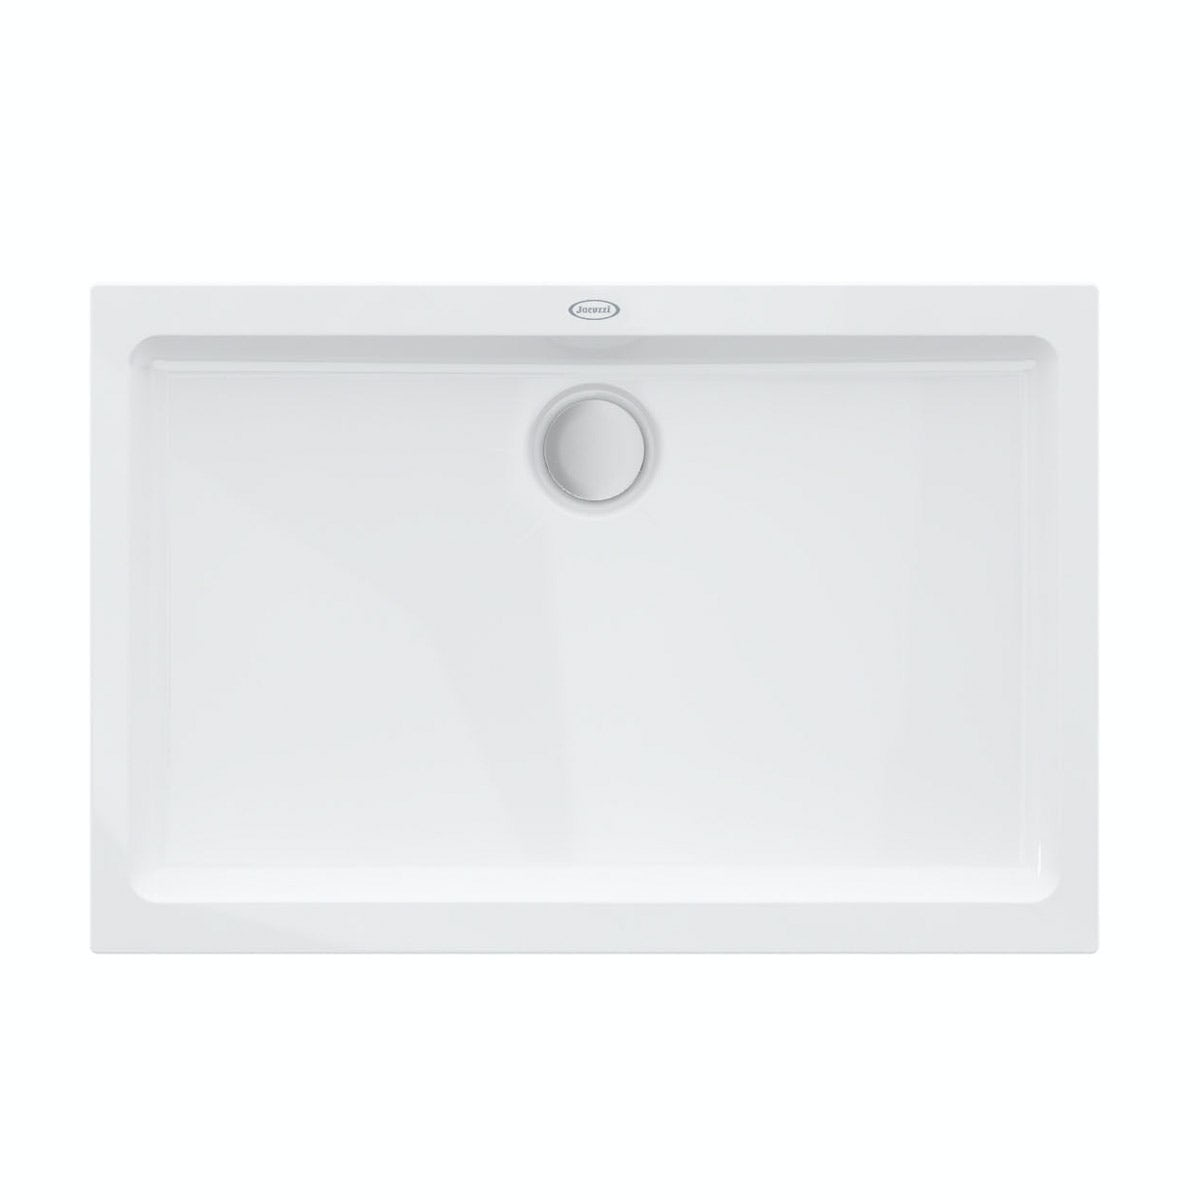 Jacuzzi Essentials matt white acrylic shower tray 1200 x 800